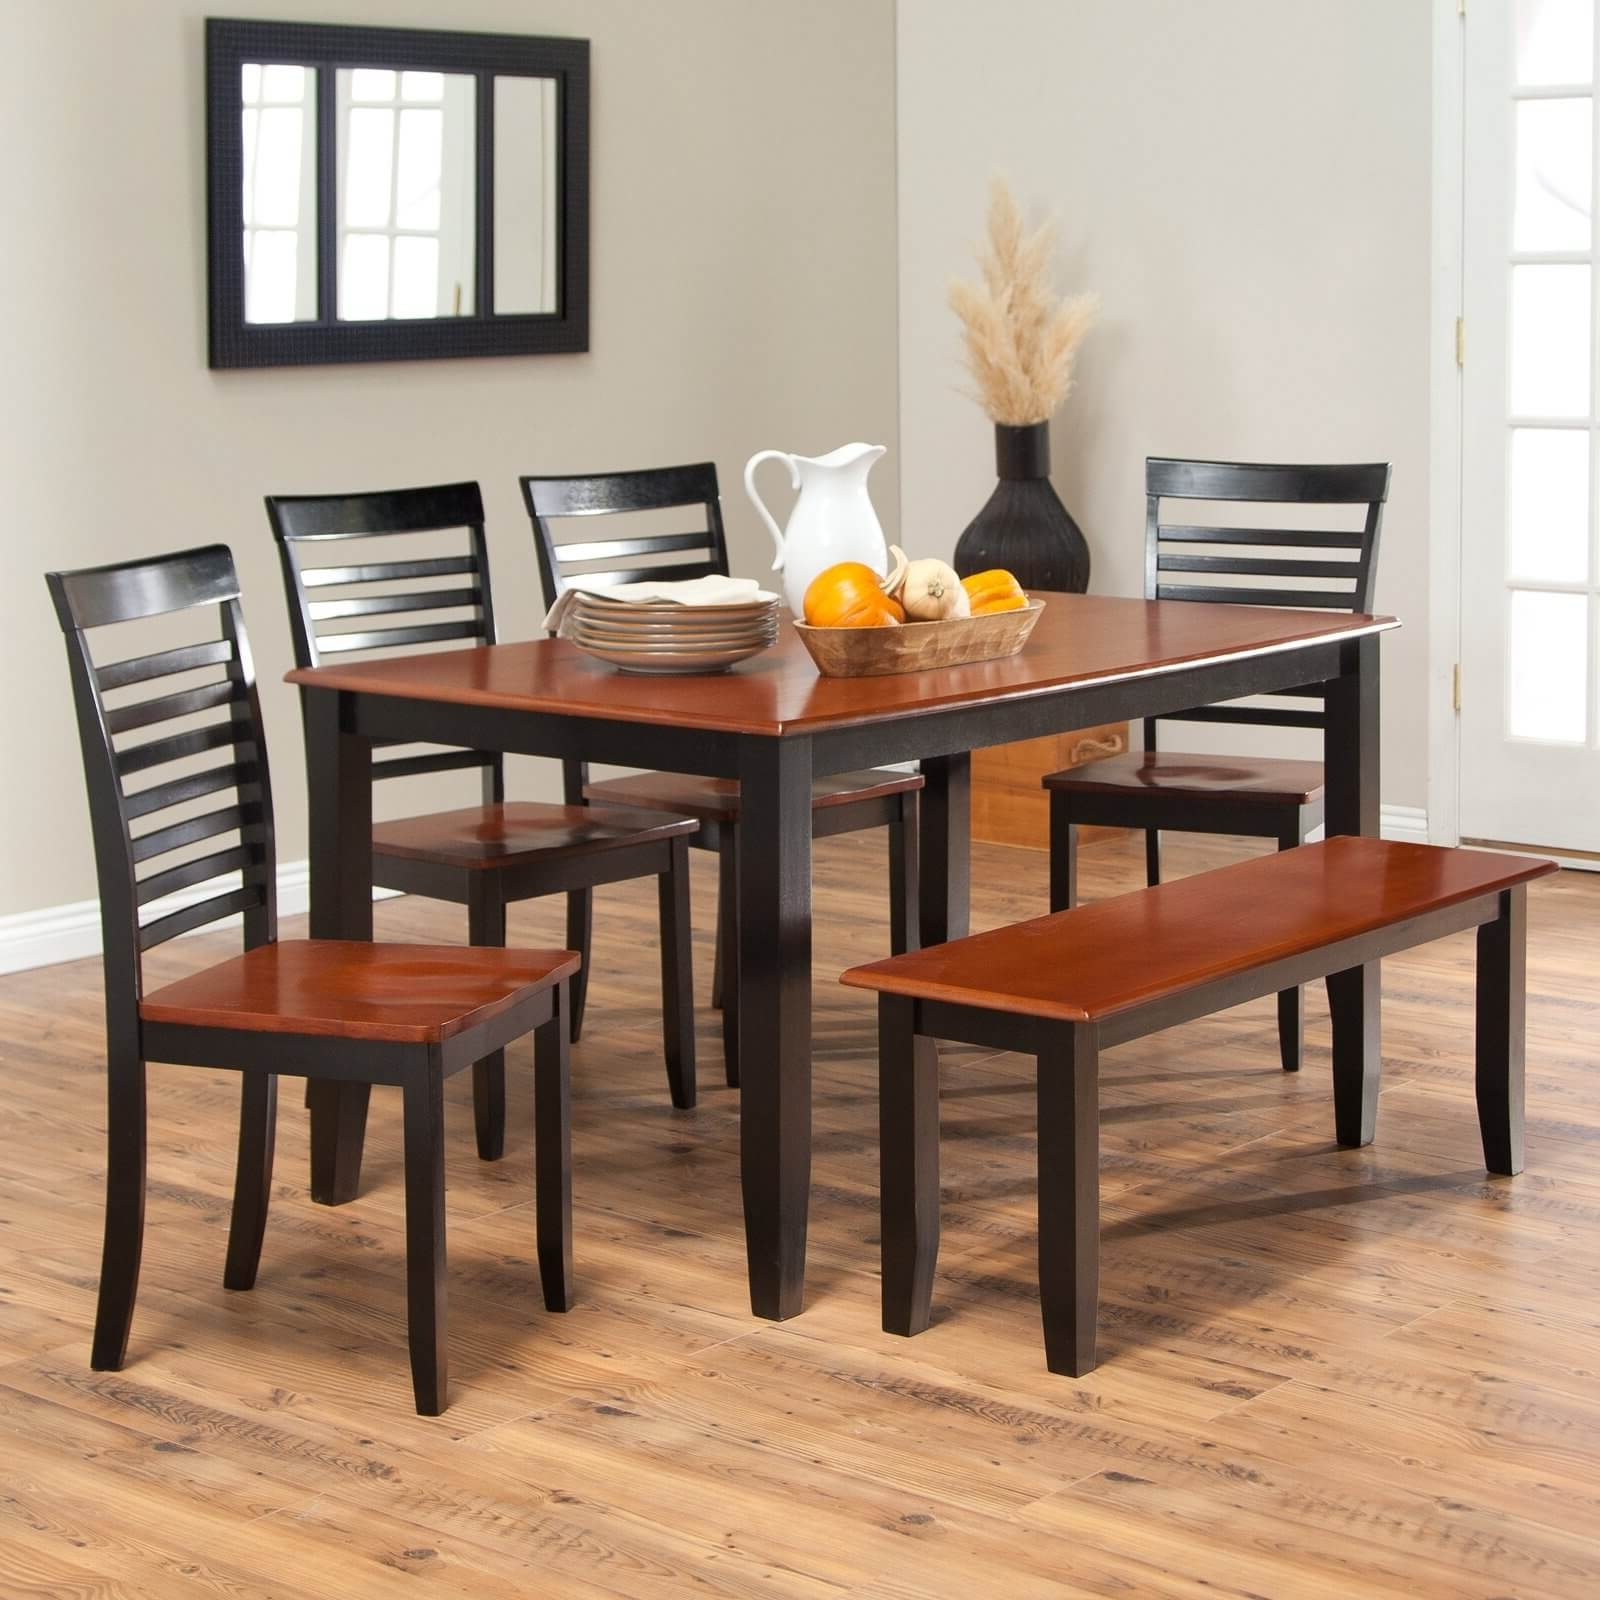 Popular Two Seat Dining Tables For 26 Dining Room Sets (Big And Small) With Bench Seating (2018) (View 18 of 25)